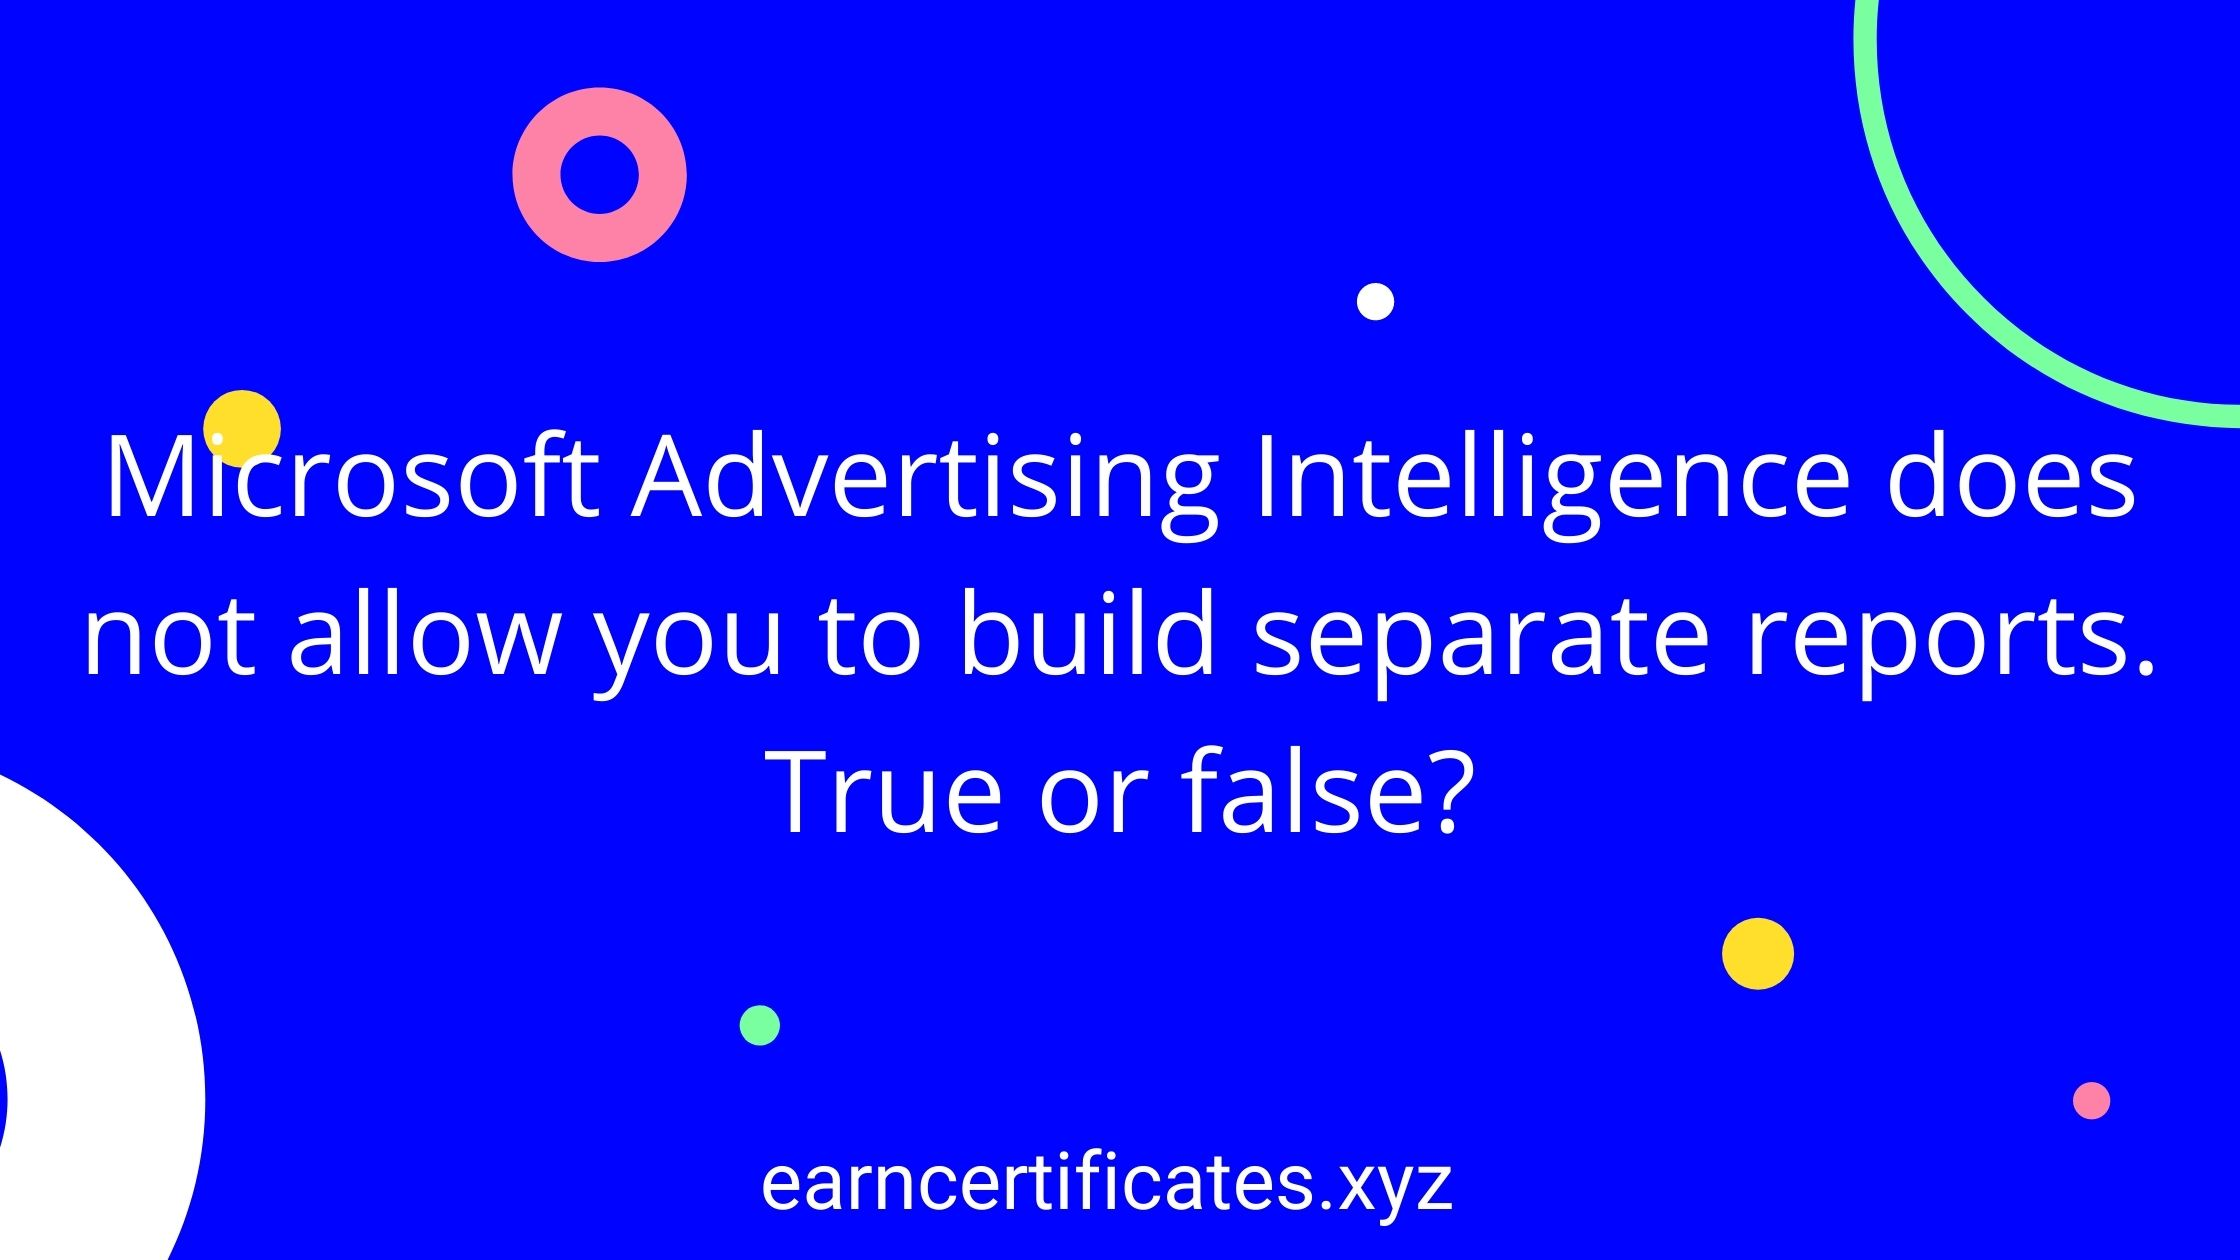 Microsoft Advertising Intelligence does not allow you to build separate reports. True or false?